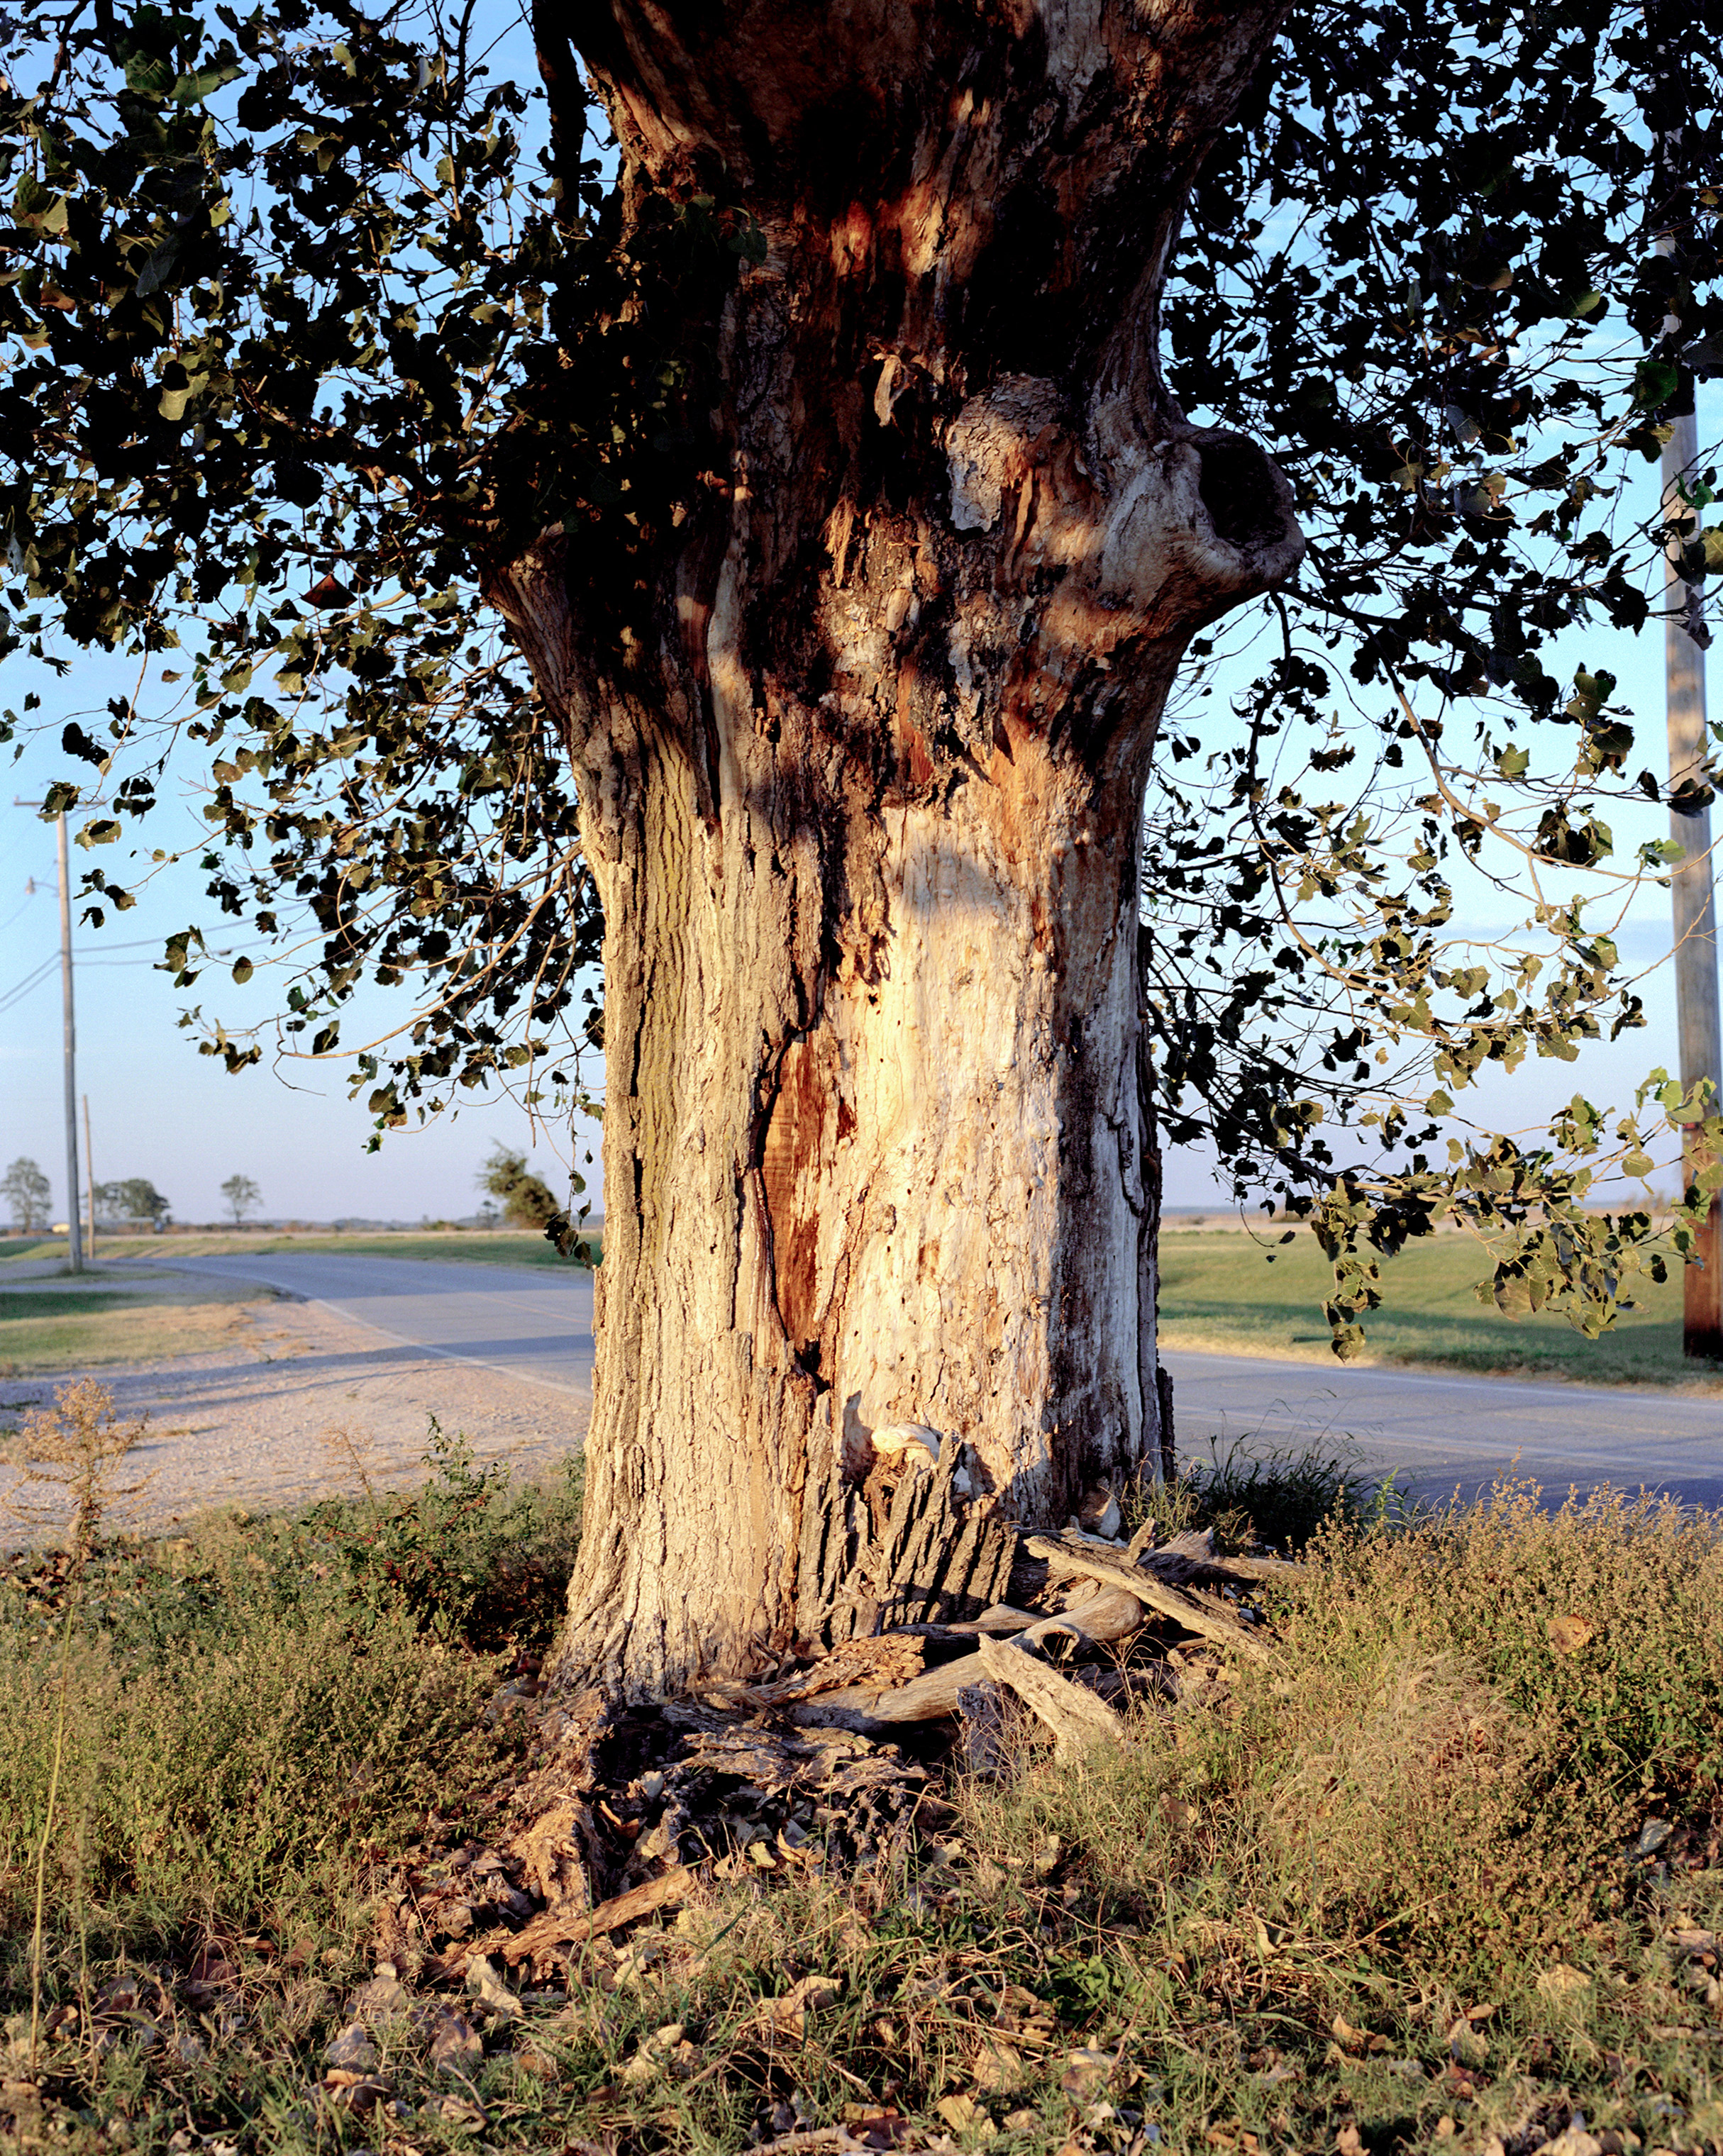 A tree in Phillips County, Ark., where a hanging may have occurred during the 1919 Race Massacre, one the deadliest mass lynchings in U.S history.